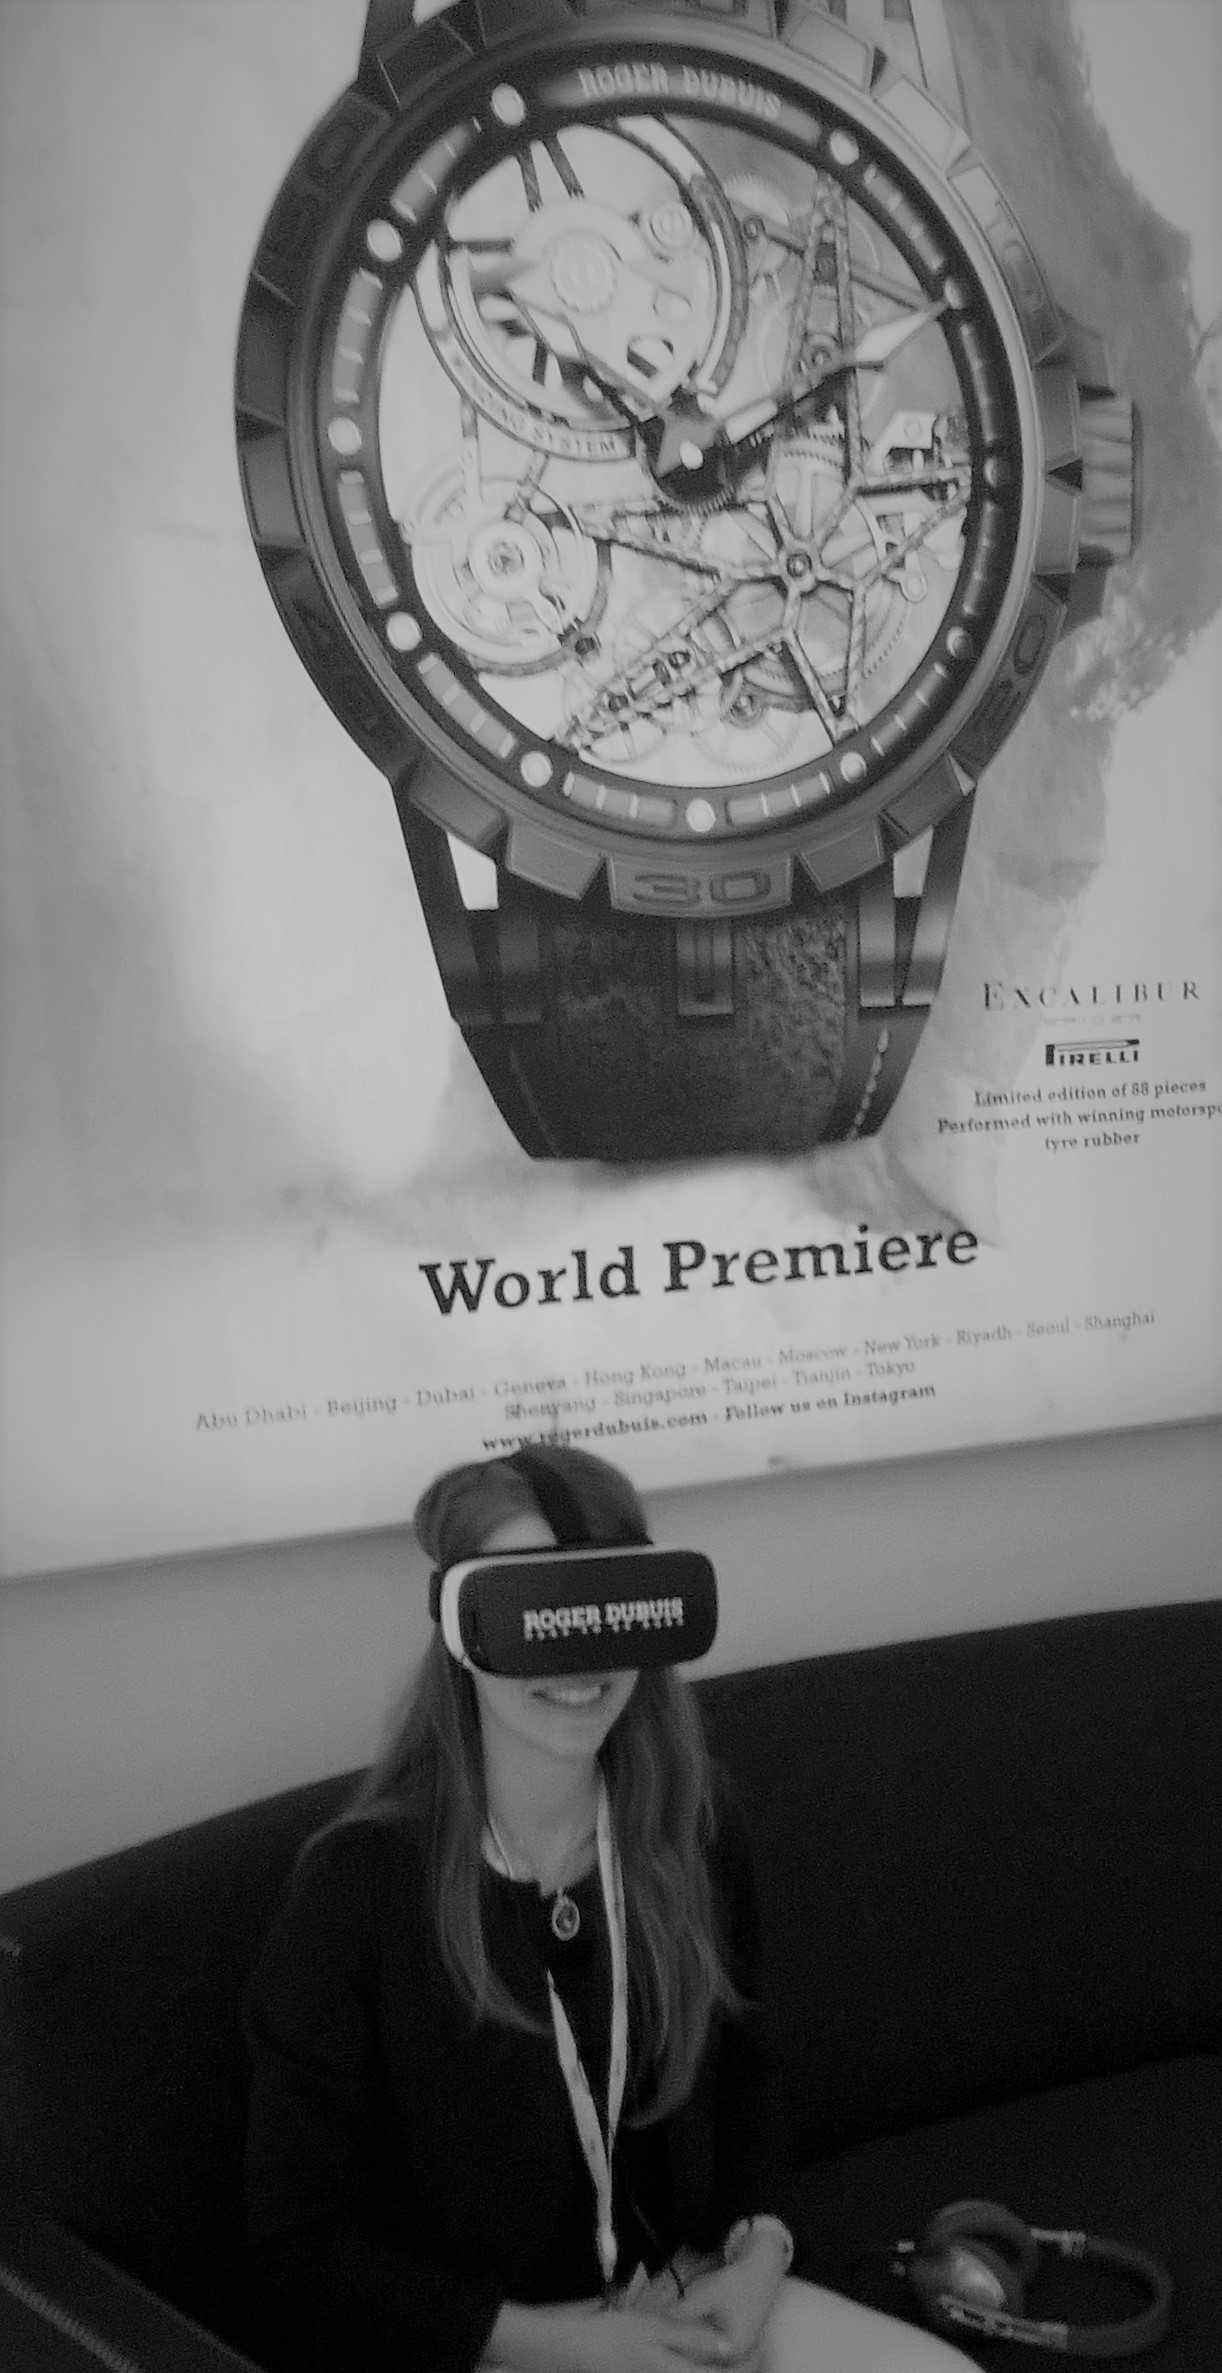 VR glasses and headphones on: ready for a virtual reality video at Roger Dubuis's stand at the SIHH 2017!